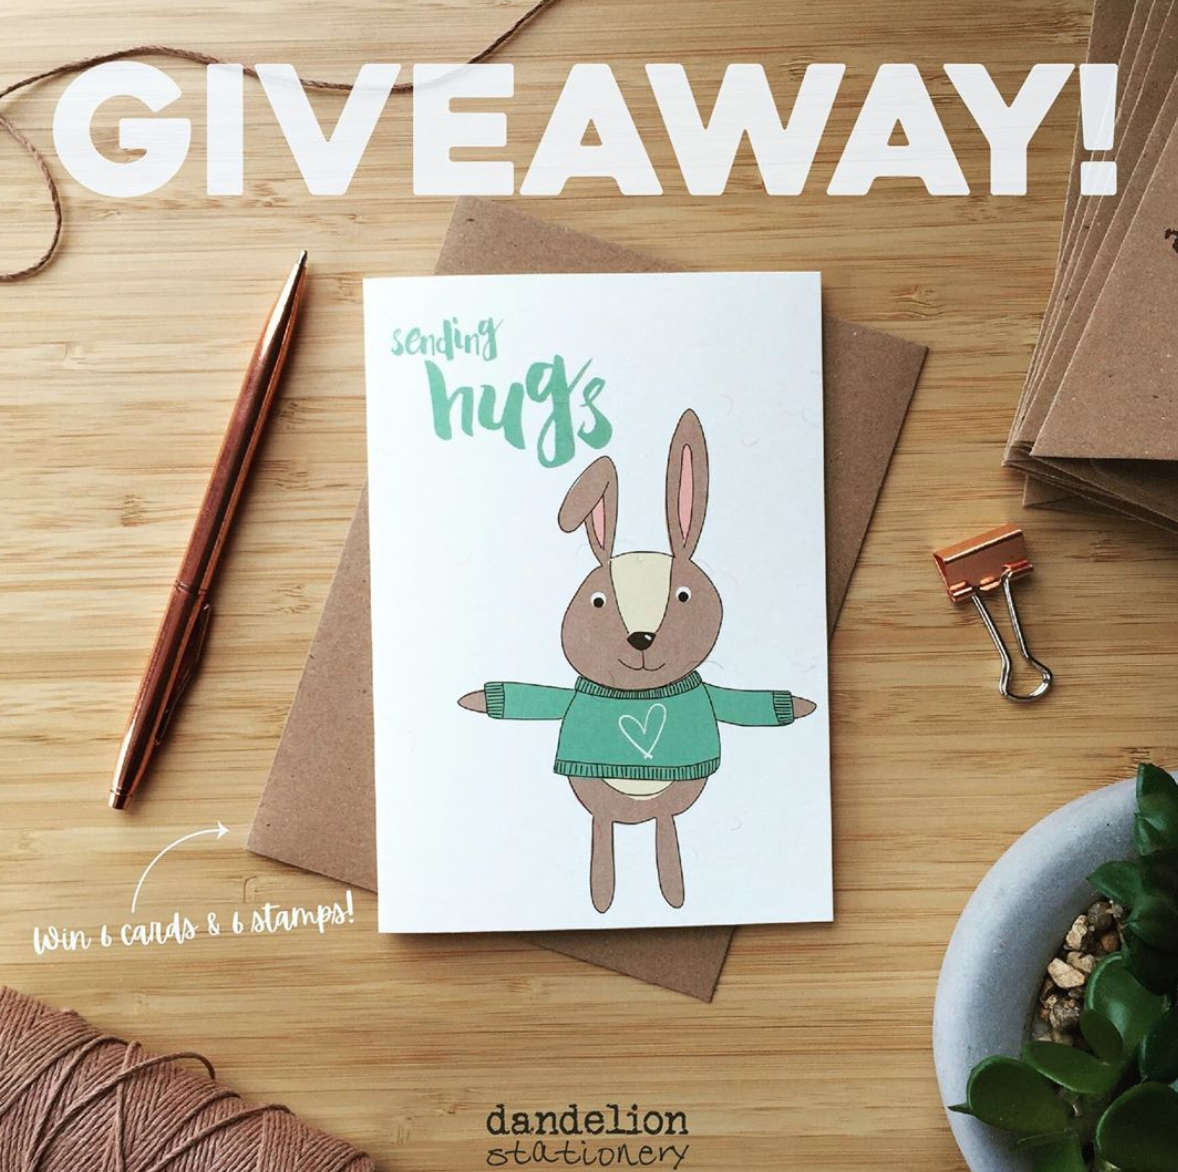 Above: In addition to helping its retail stockists, Dandelion Stationery has also taken to Instagram with a fun giveaway competition for consumers to help them keep in touch.